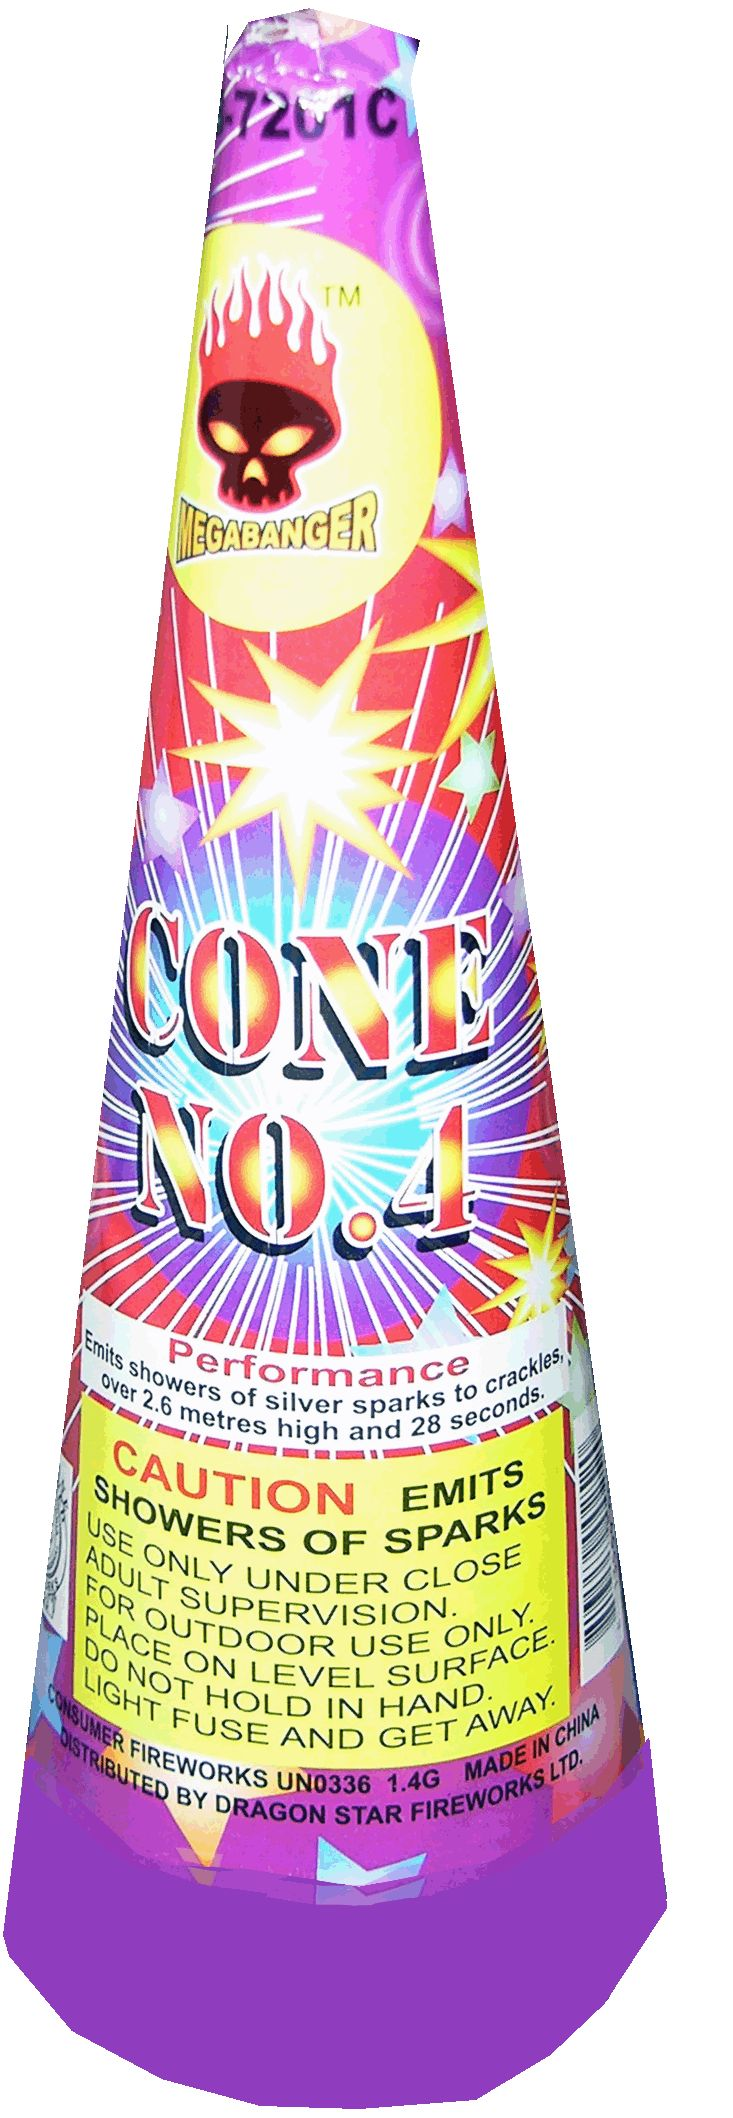 #4 Cone - North Central Industries - www.greatgrizzly.com - MUNCIE INDIANA WHOLESALE FIREWORKS •Category: Cones •Item Number: 600 •Package Contents: 72 •Dimensions: 4 x 10 x 4 •Weight: 24lbs Brand Name: Megabanger DESCRIPTION: Emits shower of silver sparks to crackles over 2.6 meters high for 28 seconds